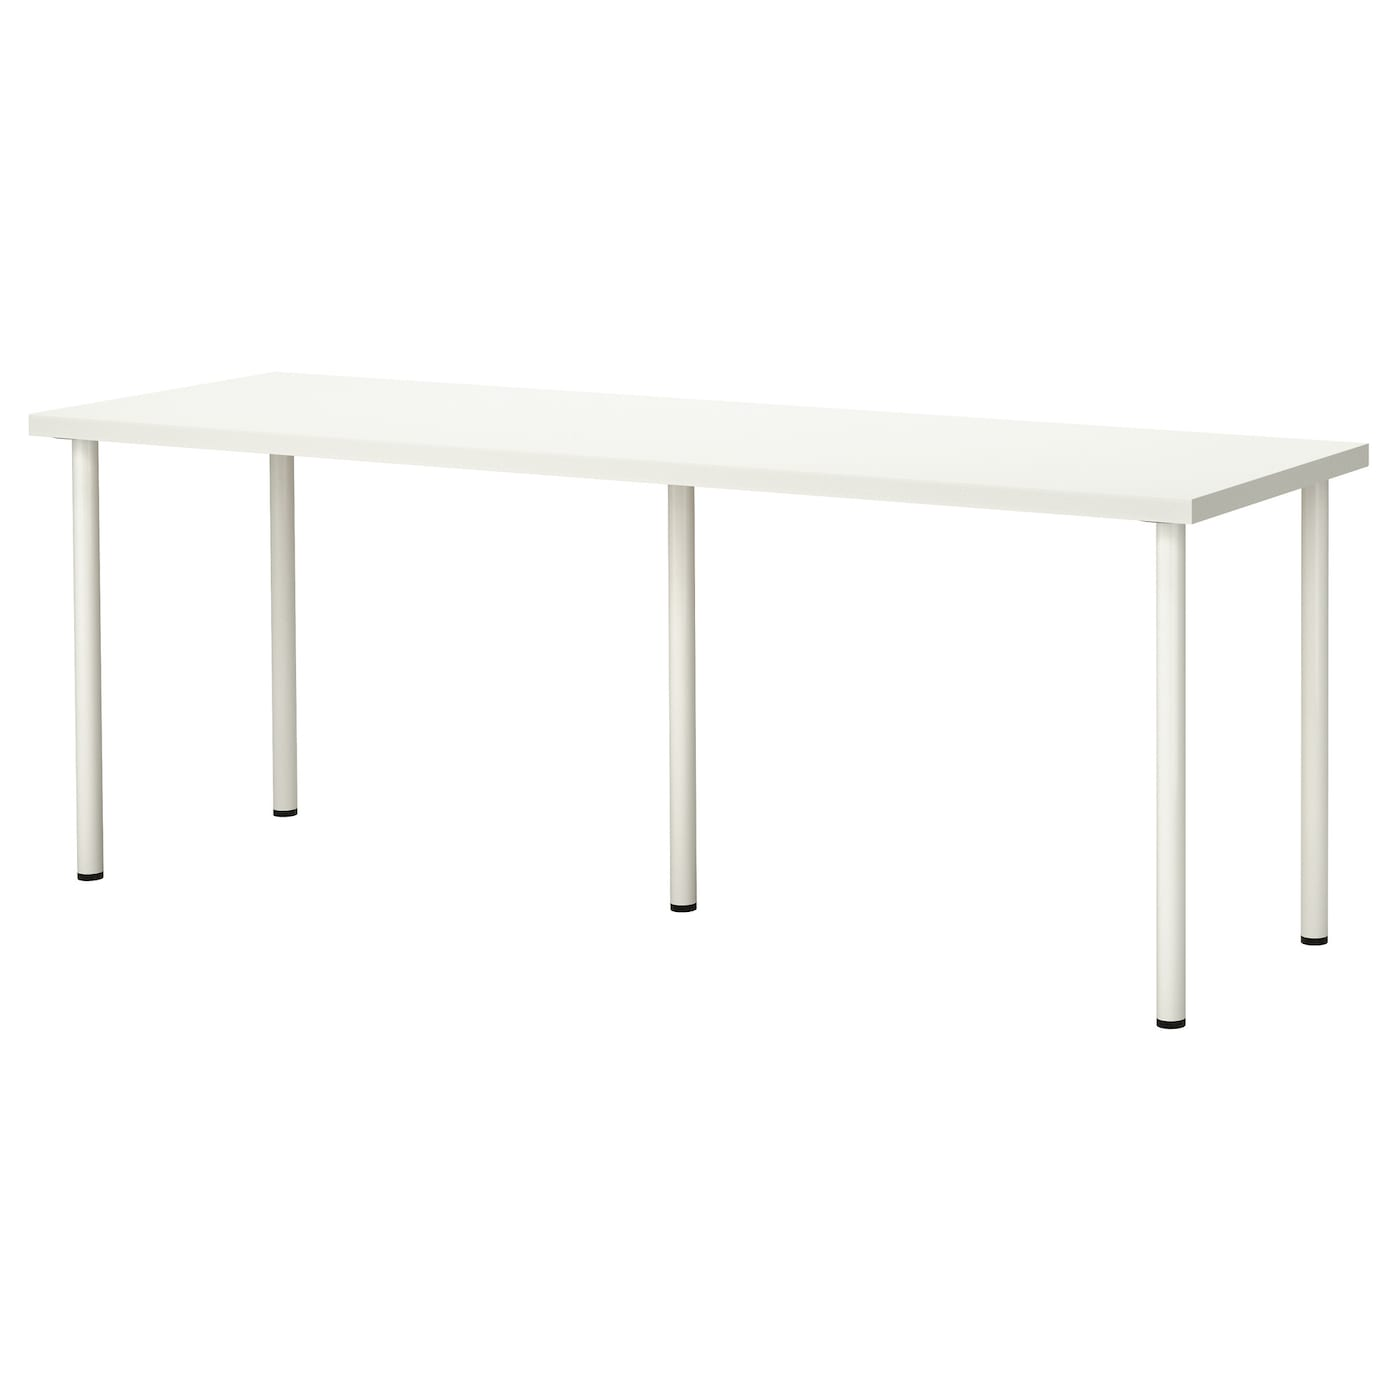 Adils linnmon table white 200x60 cm ikea for Long desk table for two